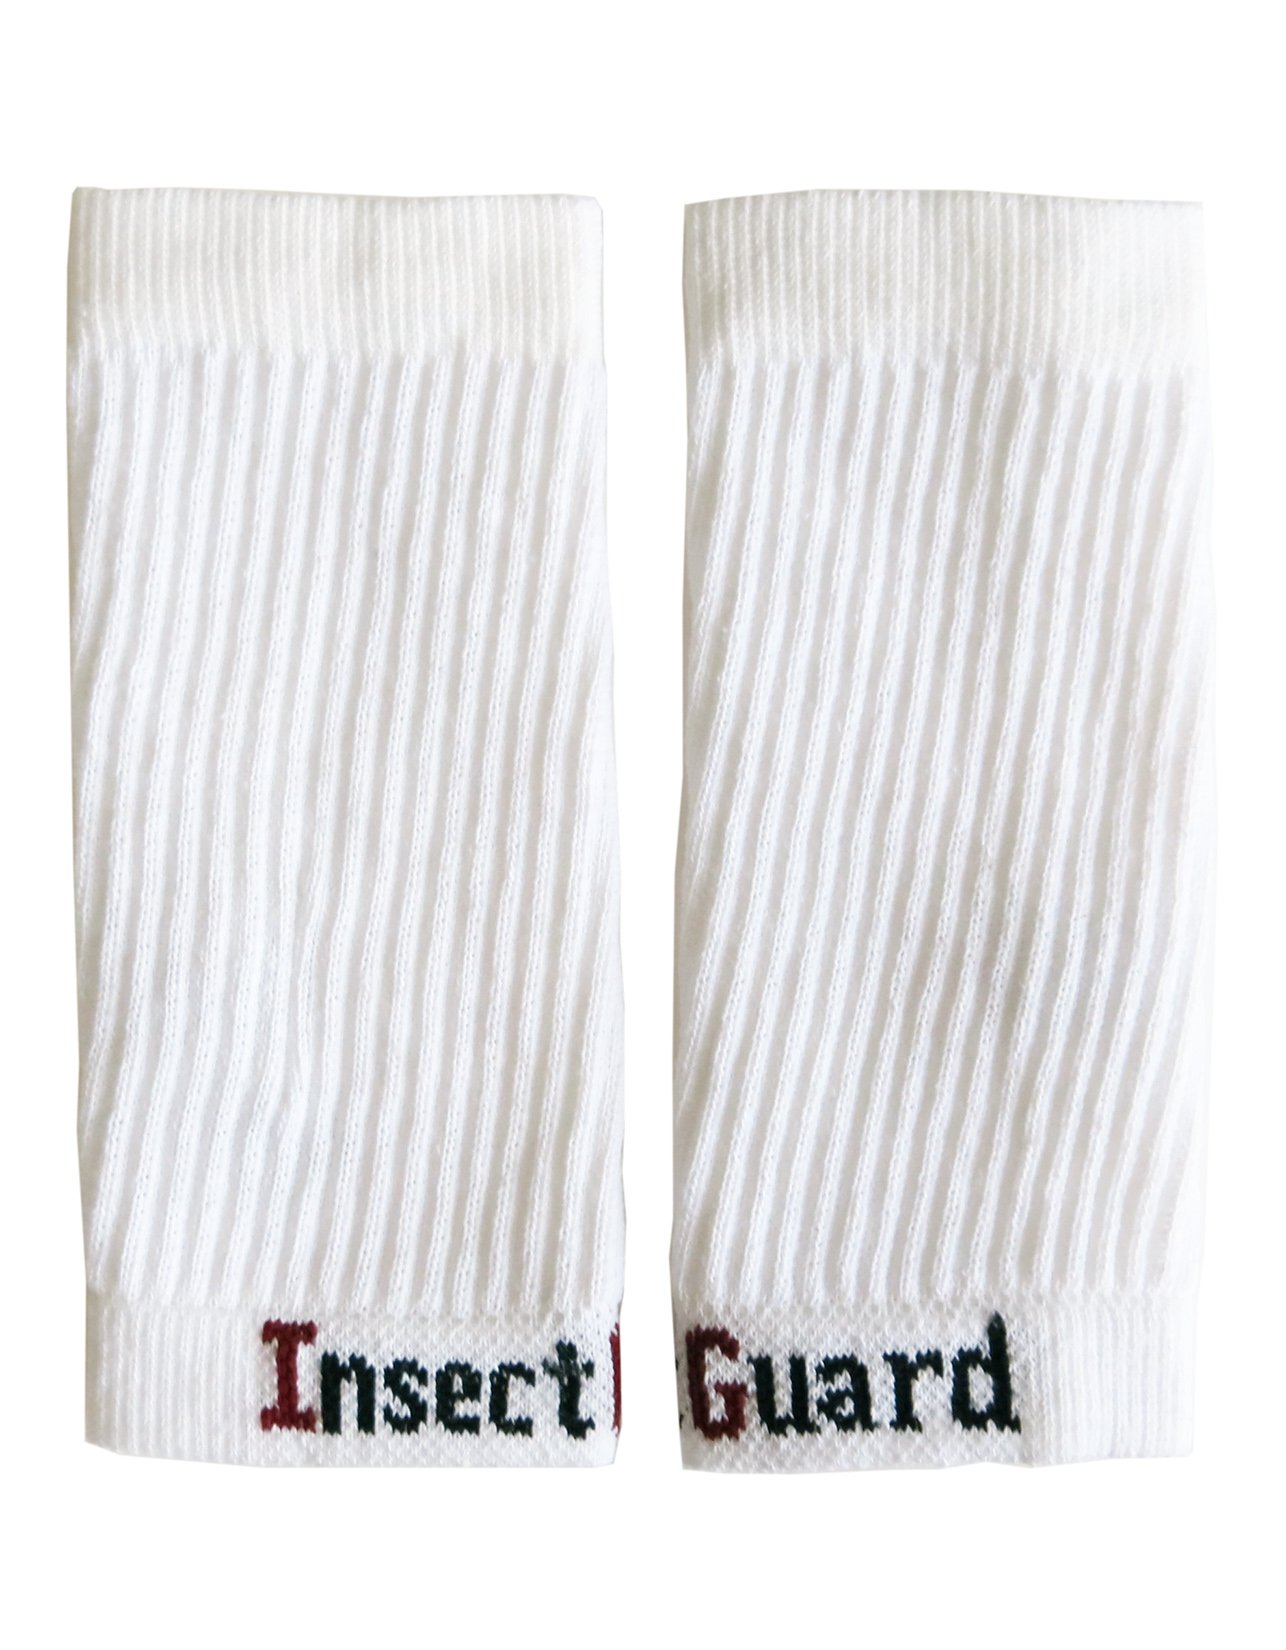 """InsectGuard - Permethrin Treated Tick & Mosquitoes Insect Repellent 7"""" Long Pair of Sleeves/Gaiters (White) One Size Fits All Up to Adult Medium"""